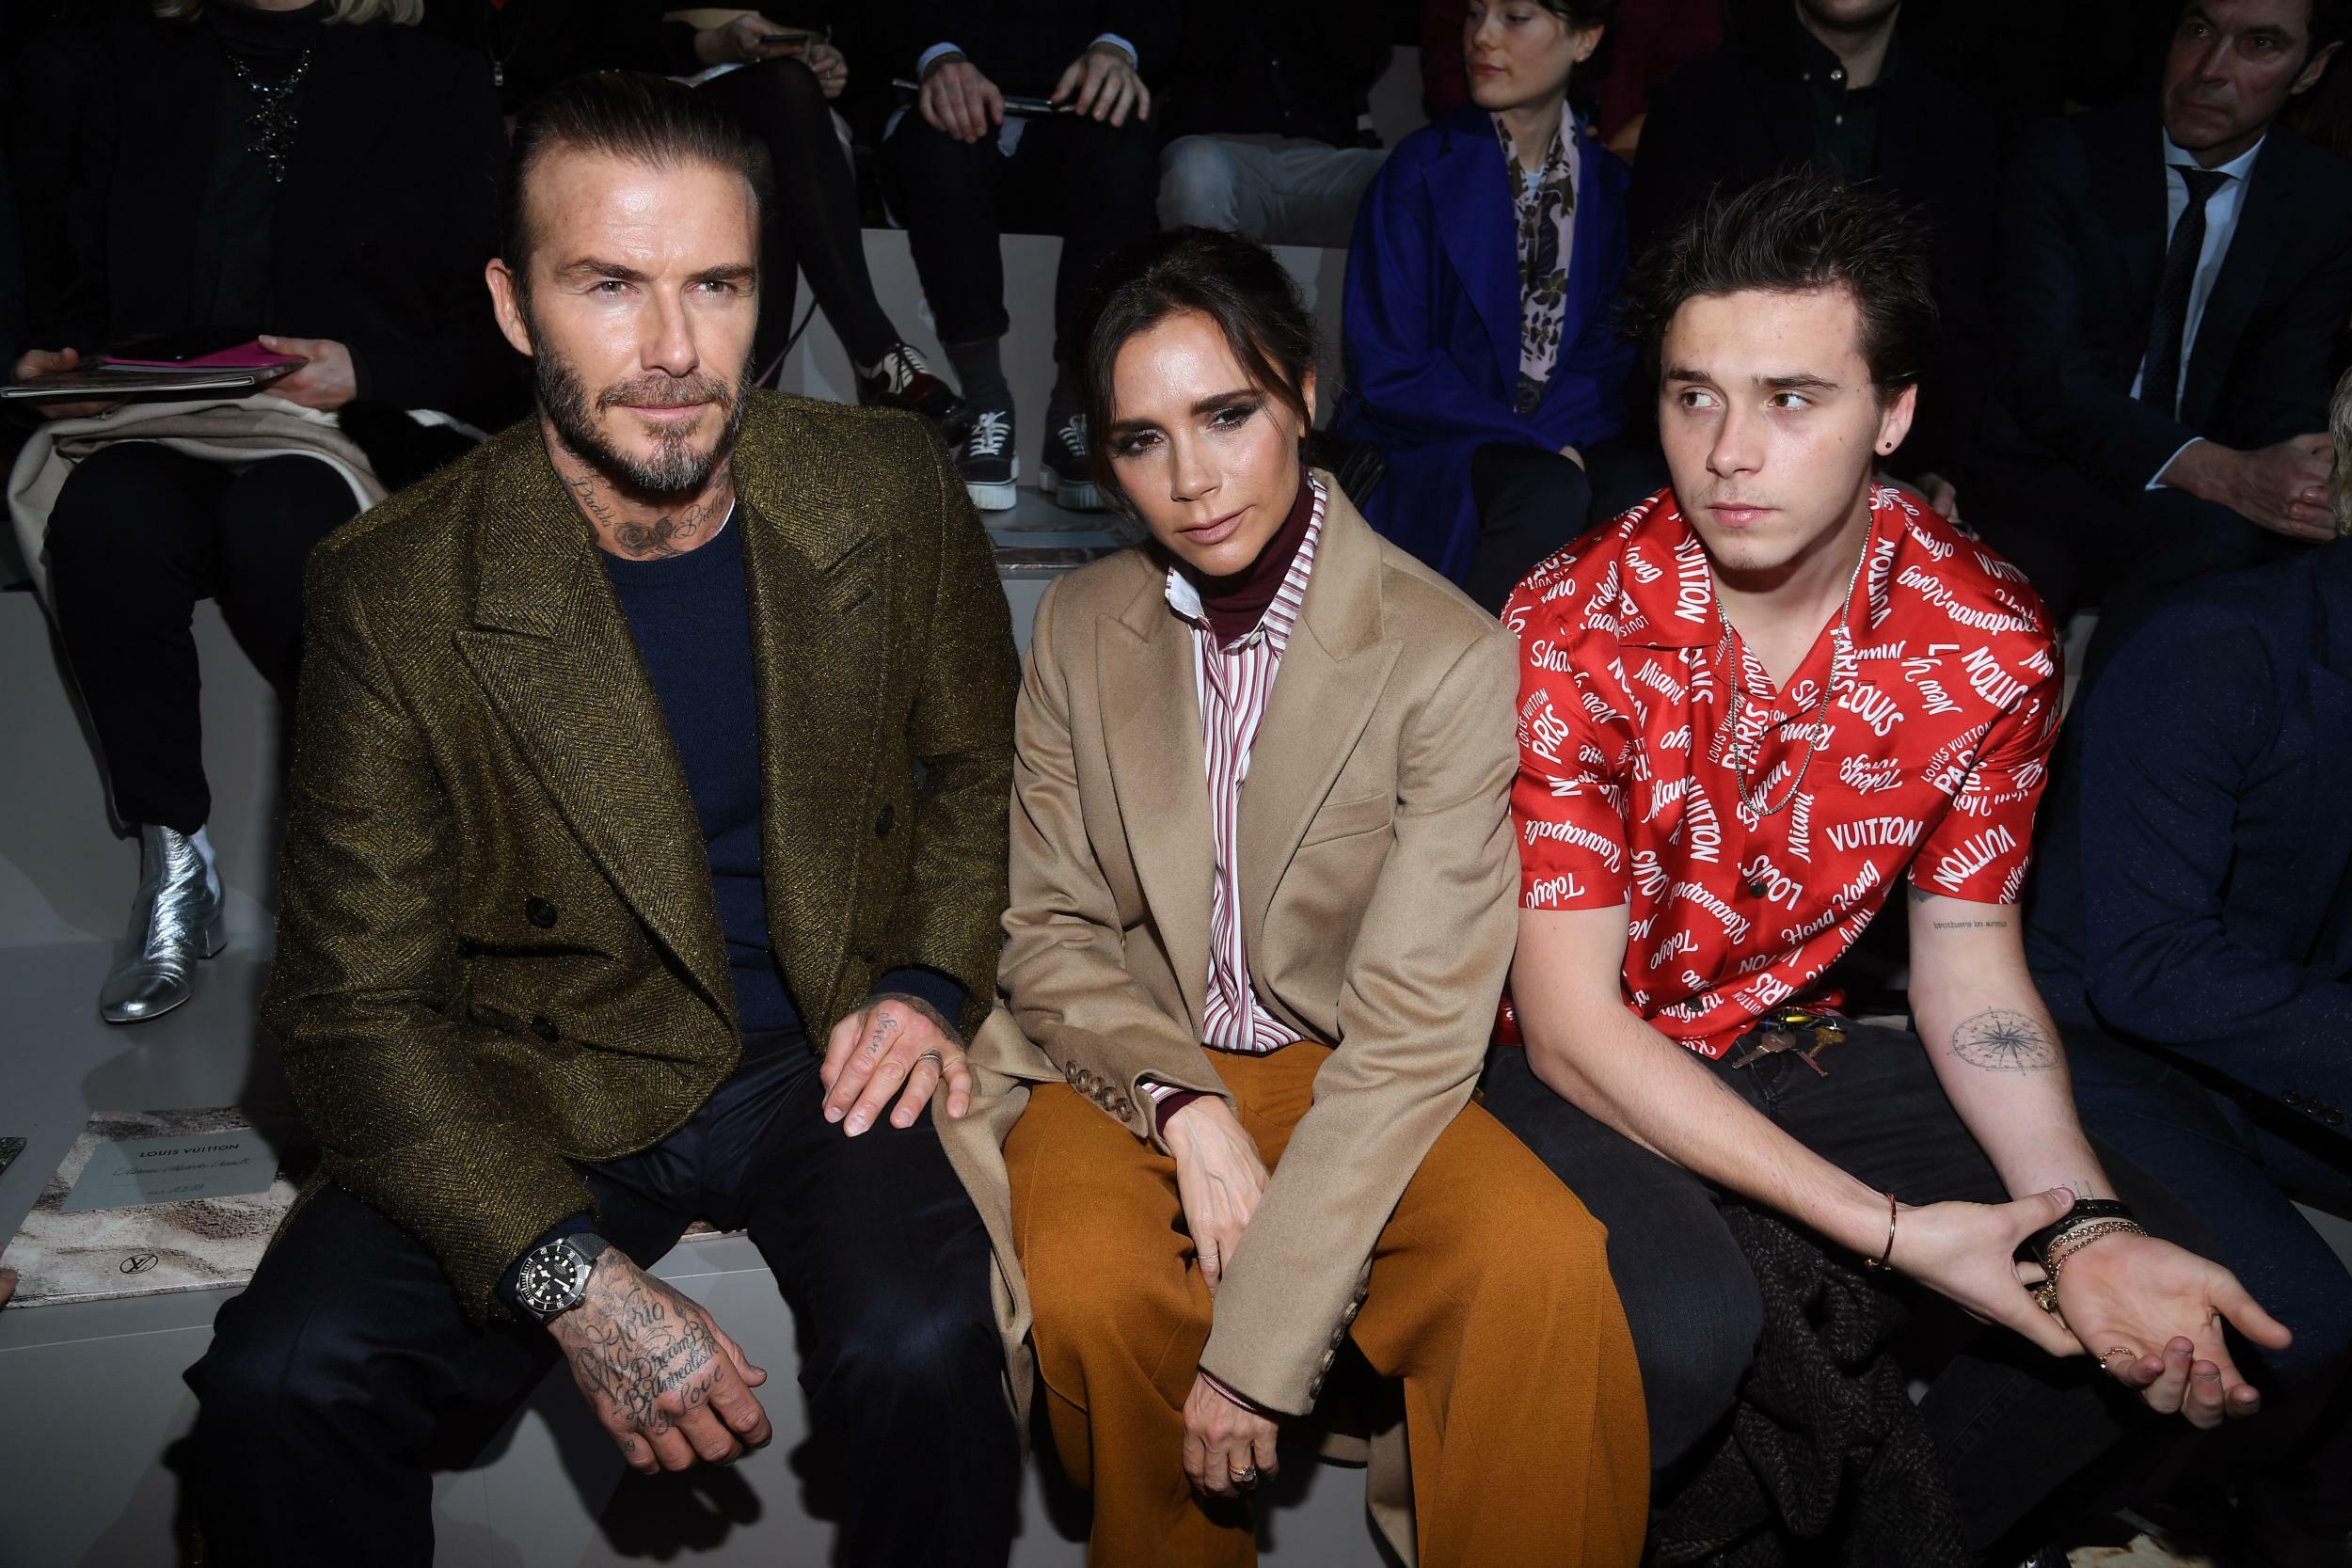 Celebrate Brooklyn Beckham's birthday with his best looks, quotes and Beckham family moments